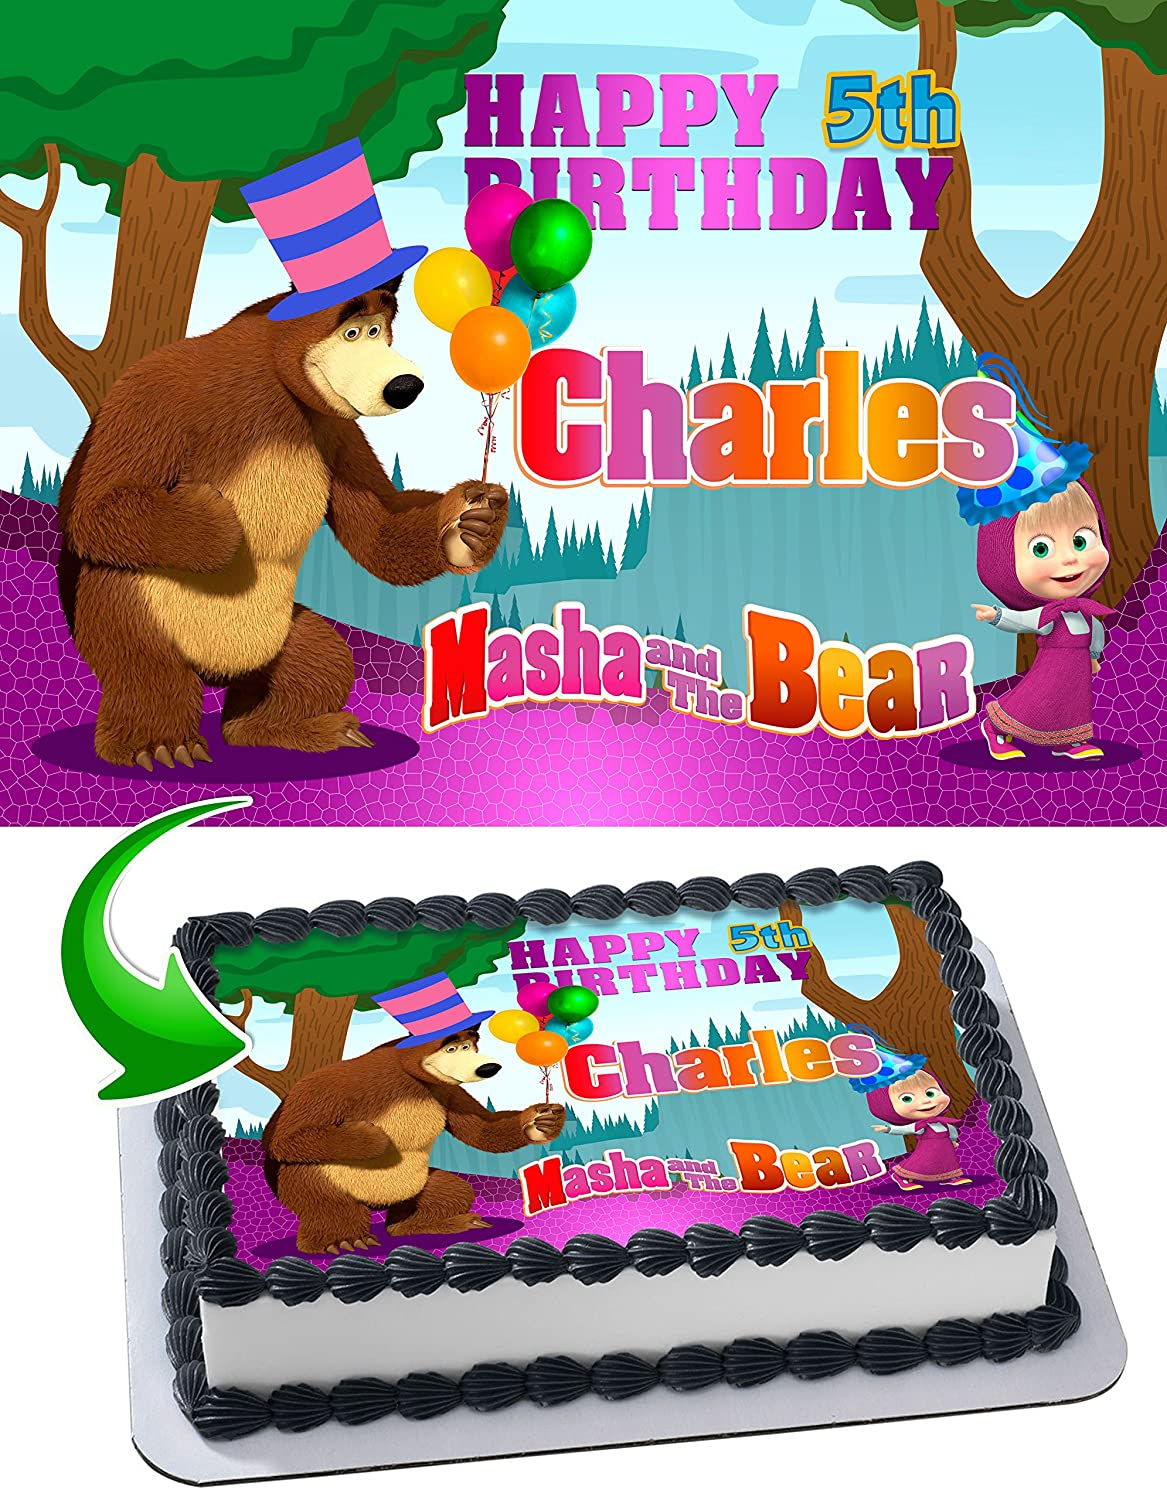 Masha And The Bear Birthday Cake Personalized Cake Toppers Edible